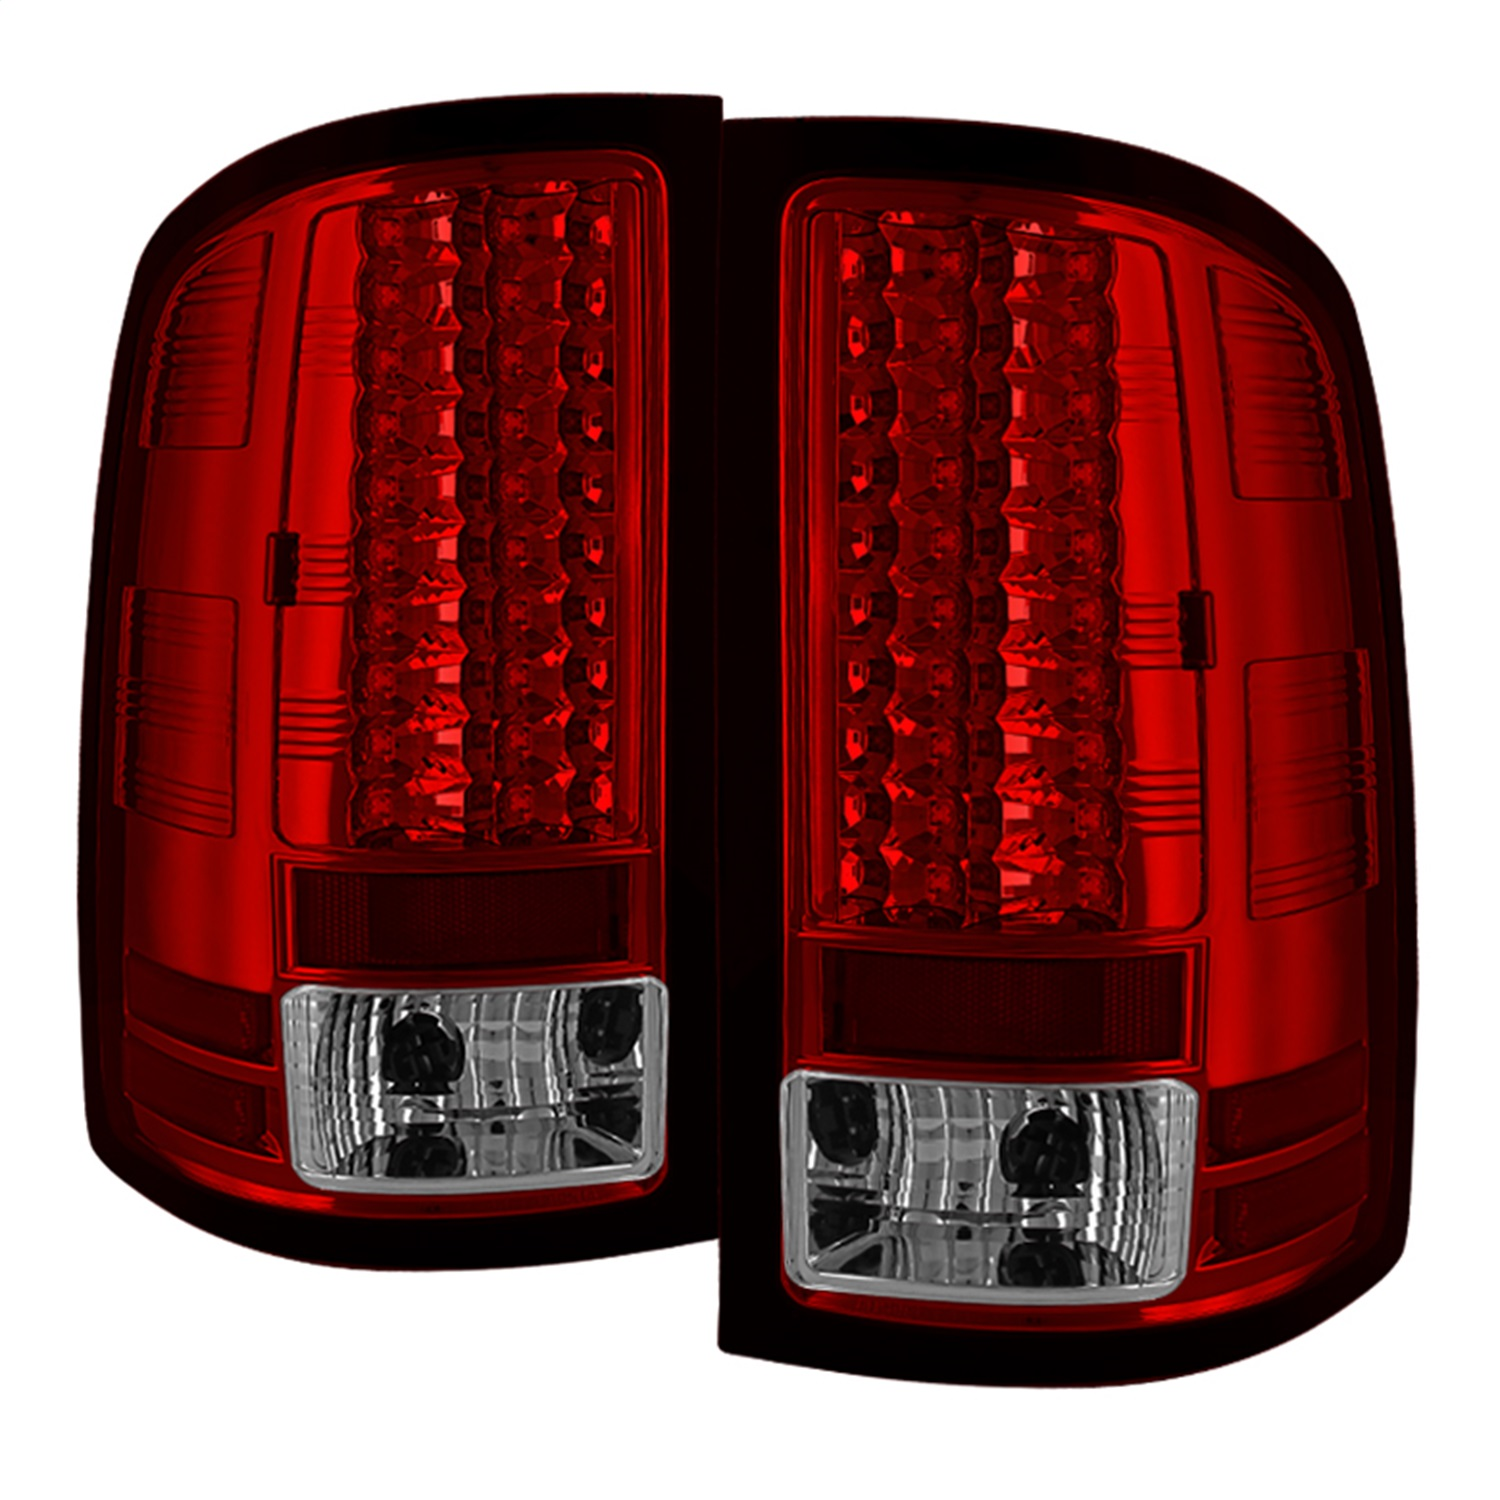 Spyder Auto 5014955 LED Tail Lights